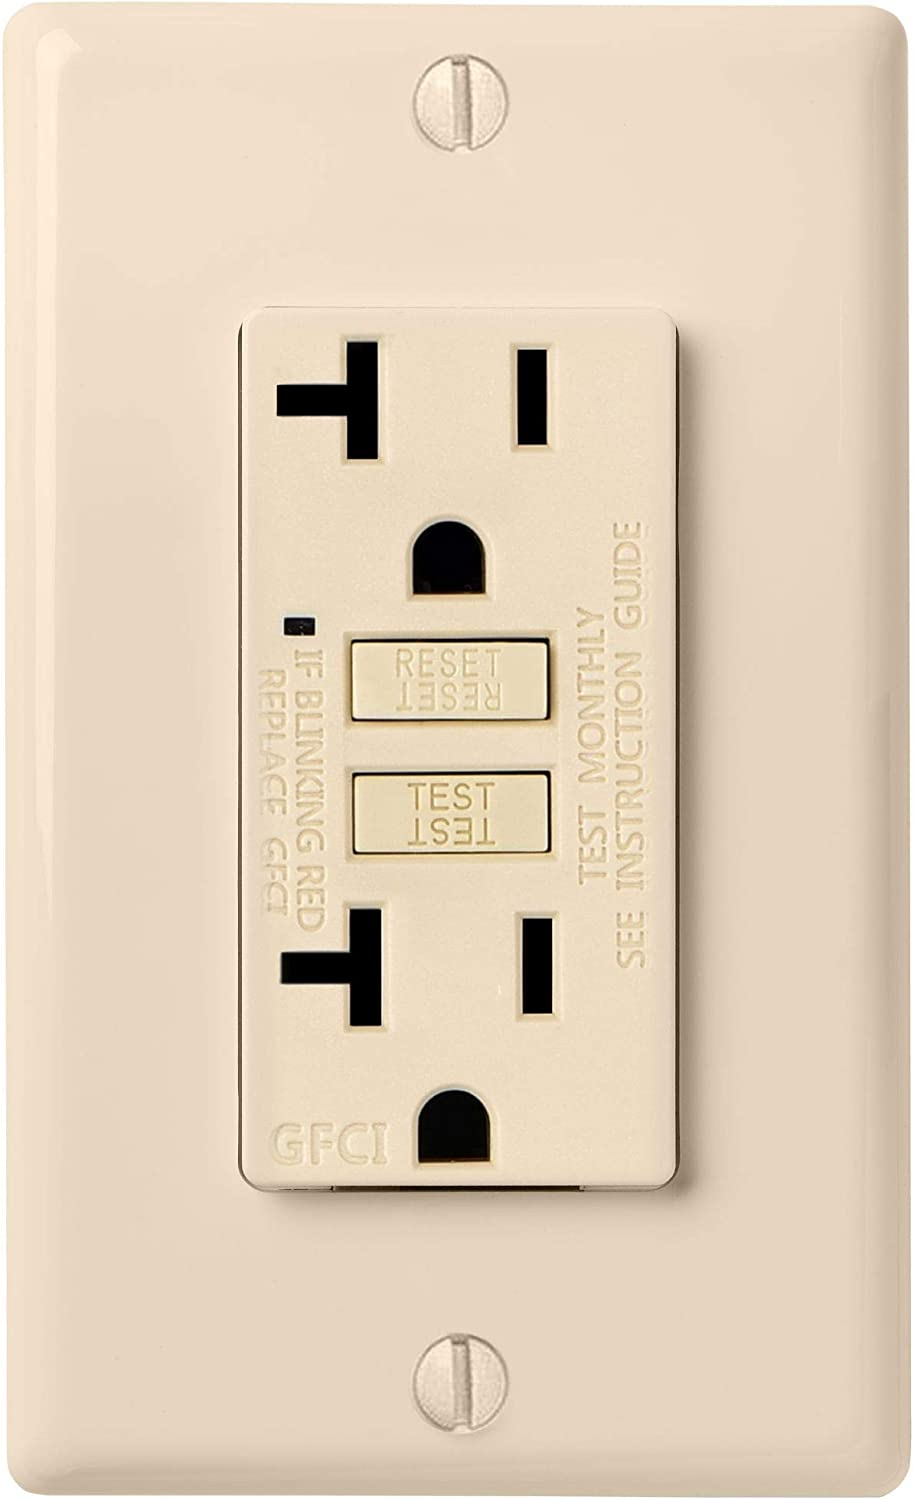 Faith 20A GFCI Outlet Slim, Non-Tamper-Resistant GFI Duplex Receptacles with LED Indicator, Self-Test Ground Fault Circuit Interrupter with Wall Plate, ETL Listed, Ivory - -